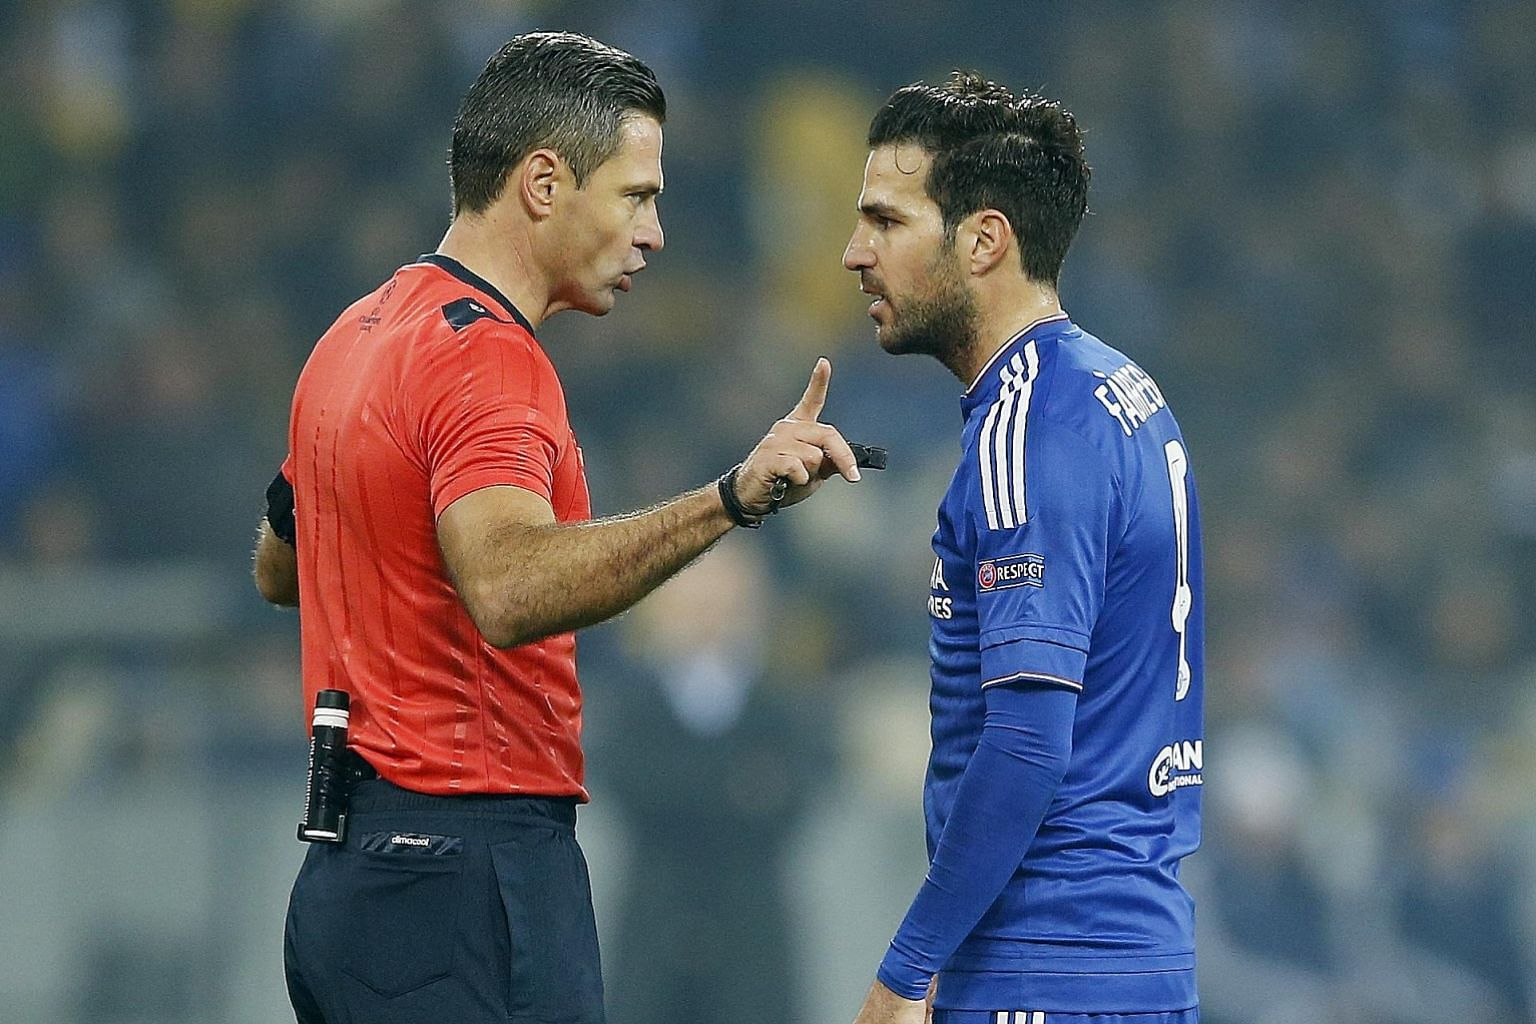 Chelsea's Cesc Fabregas speaks to referee Damir Skomina after being denied a penalty. Chelsea are in third place in Champions League Group G after their 0-0 draw.